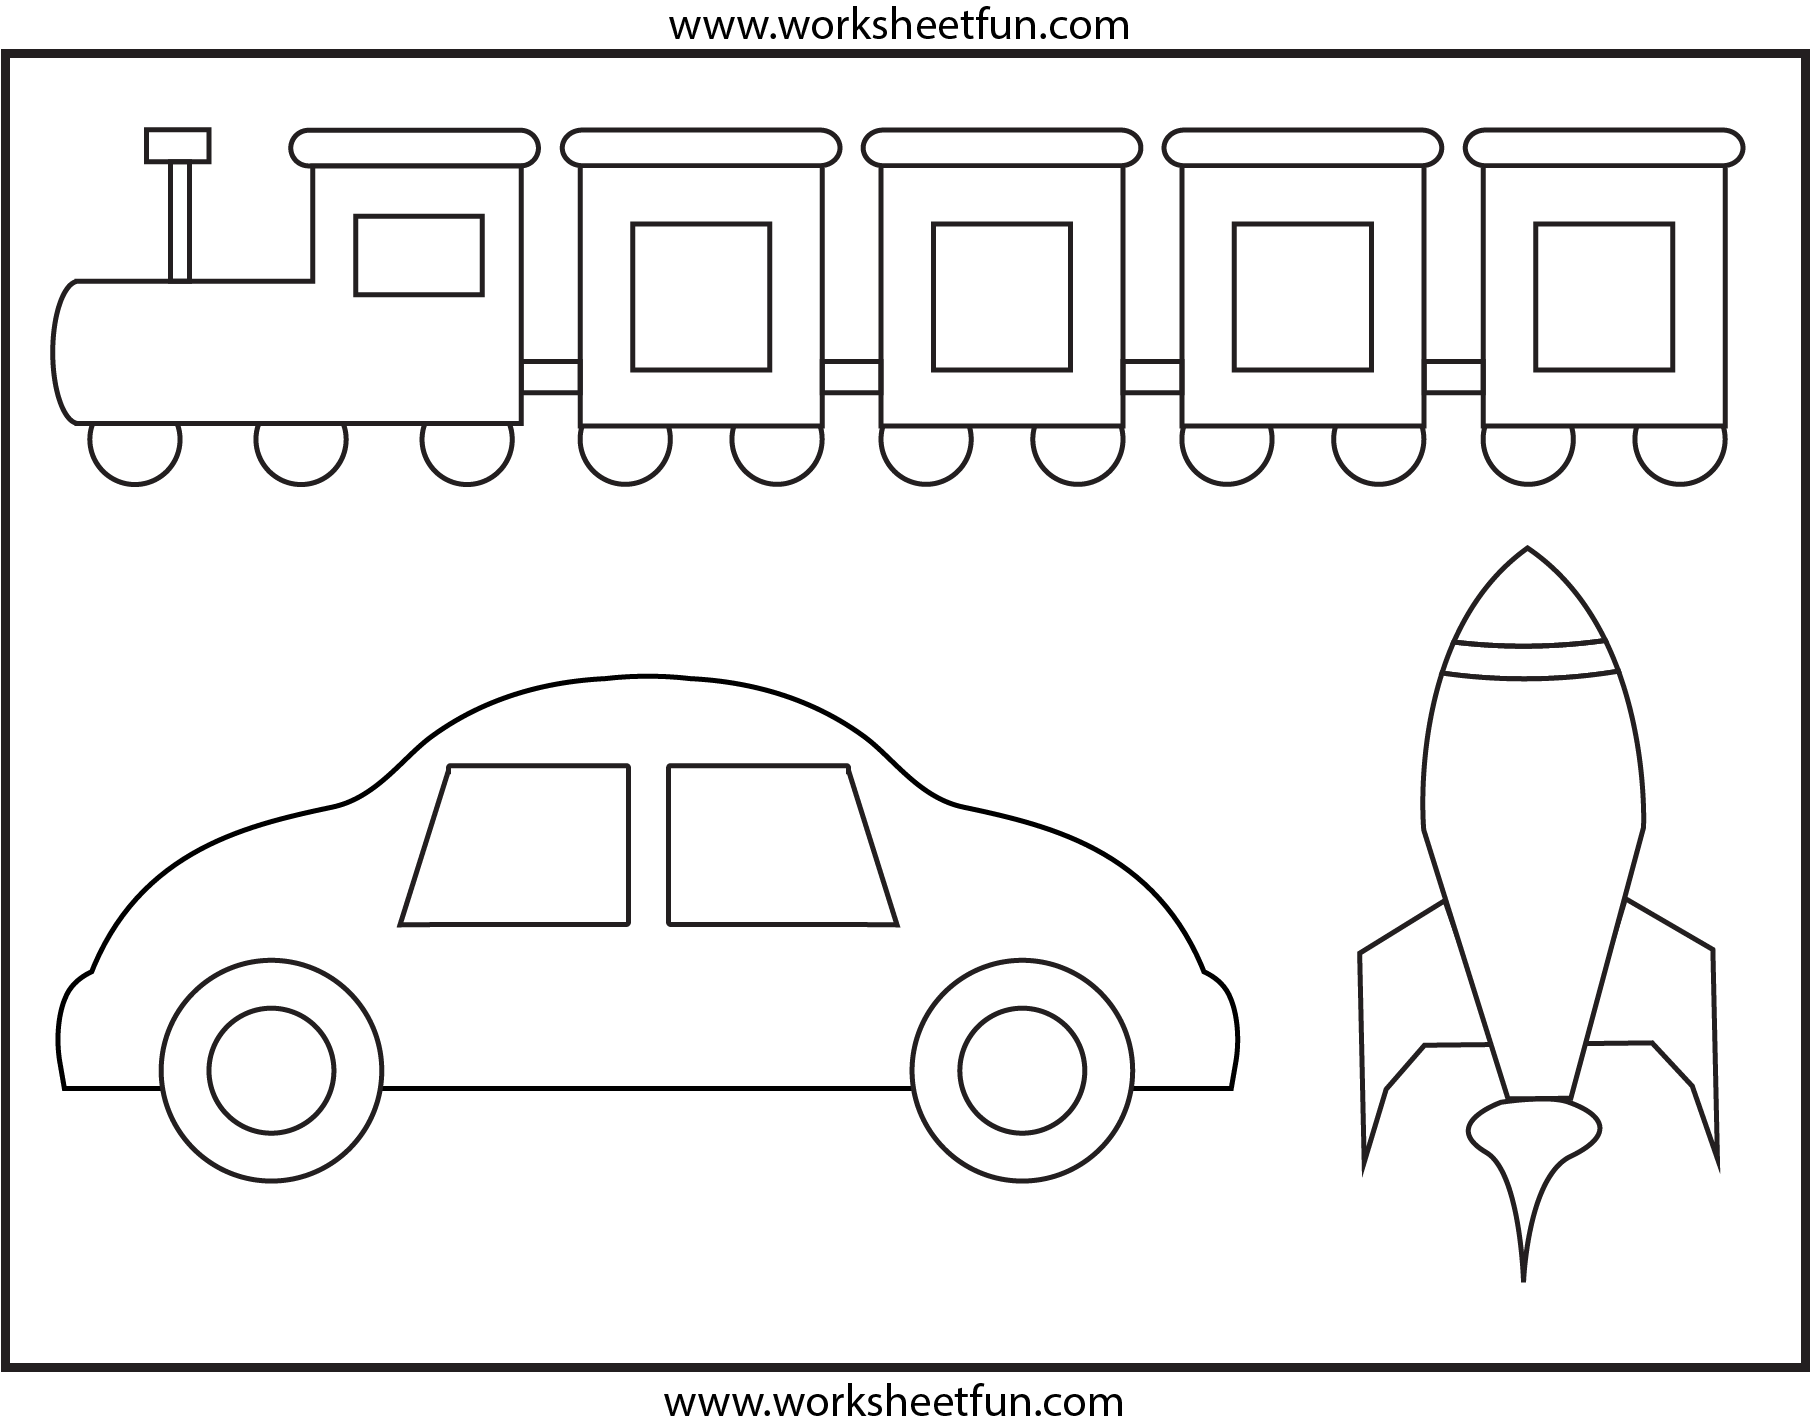 Coloring 1 Worksheet Free Printable Worksheets